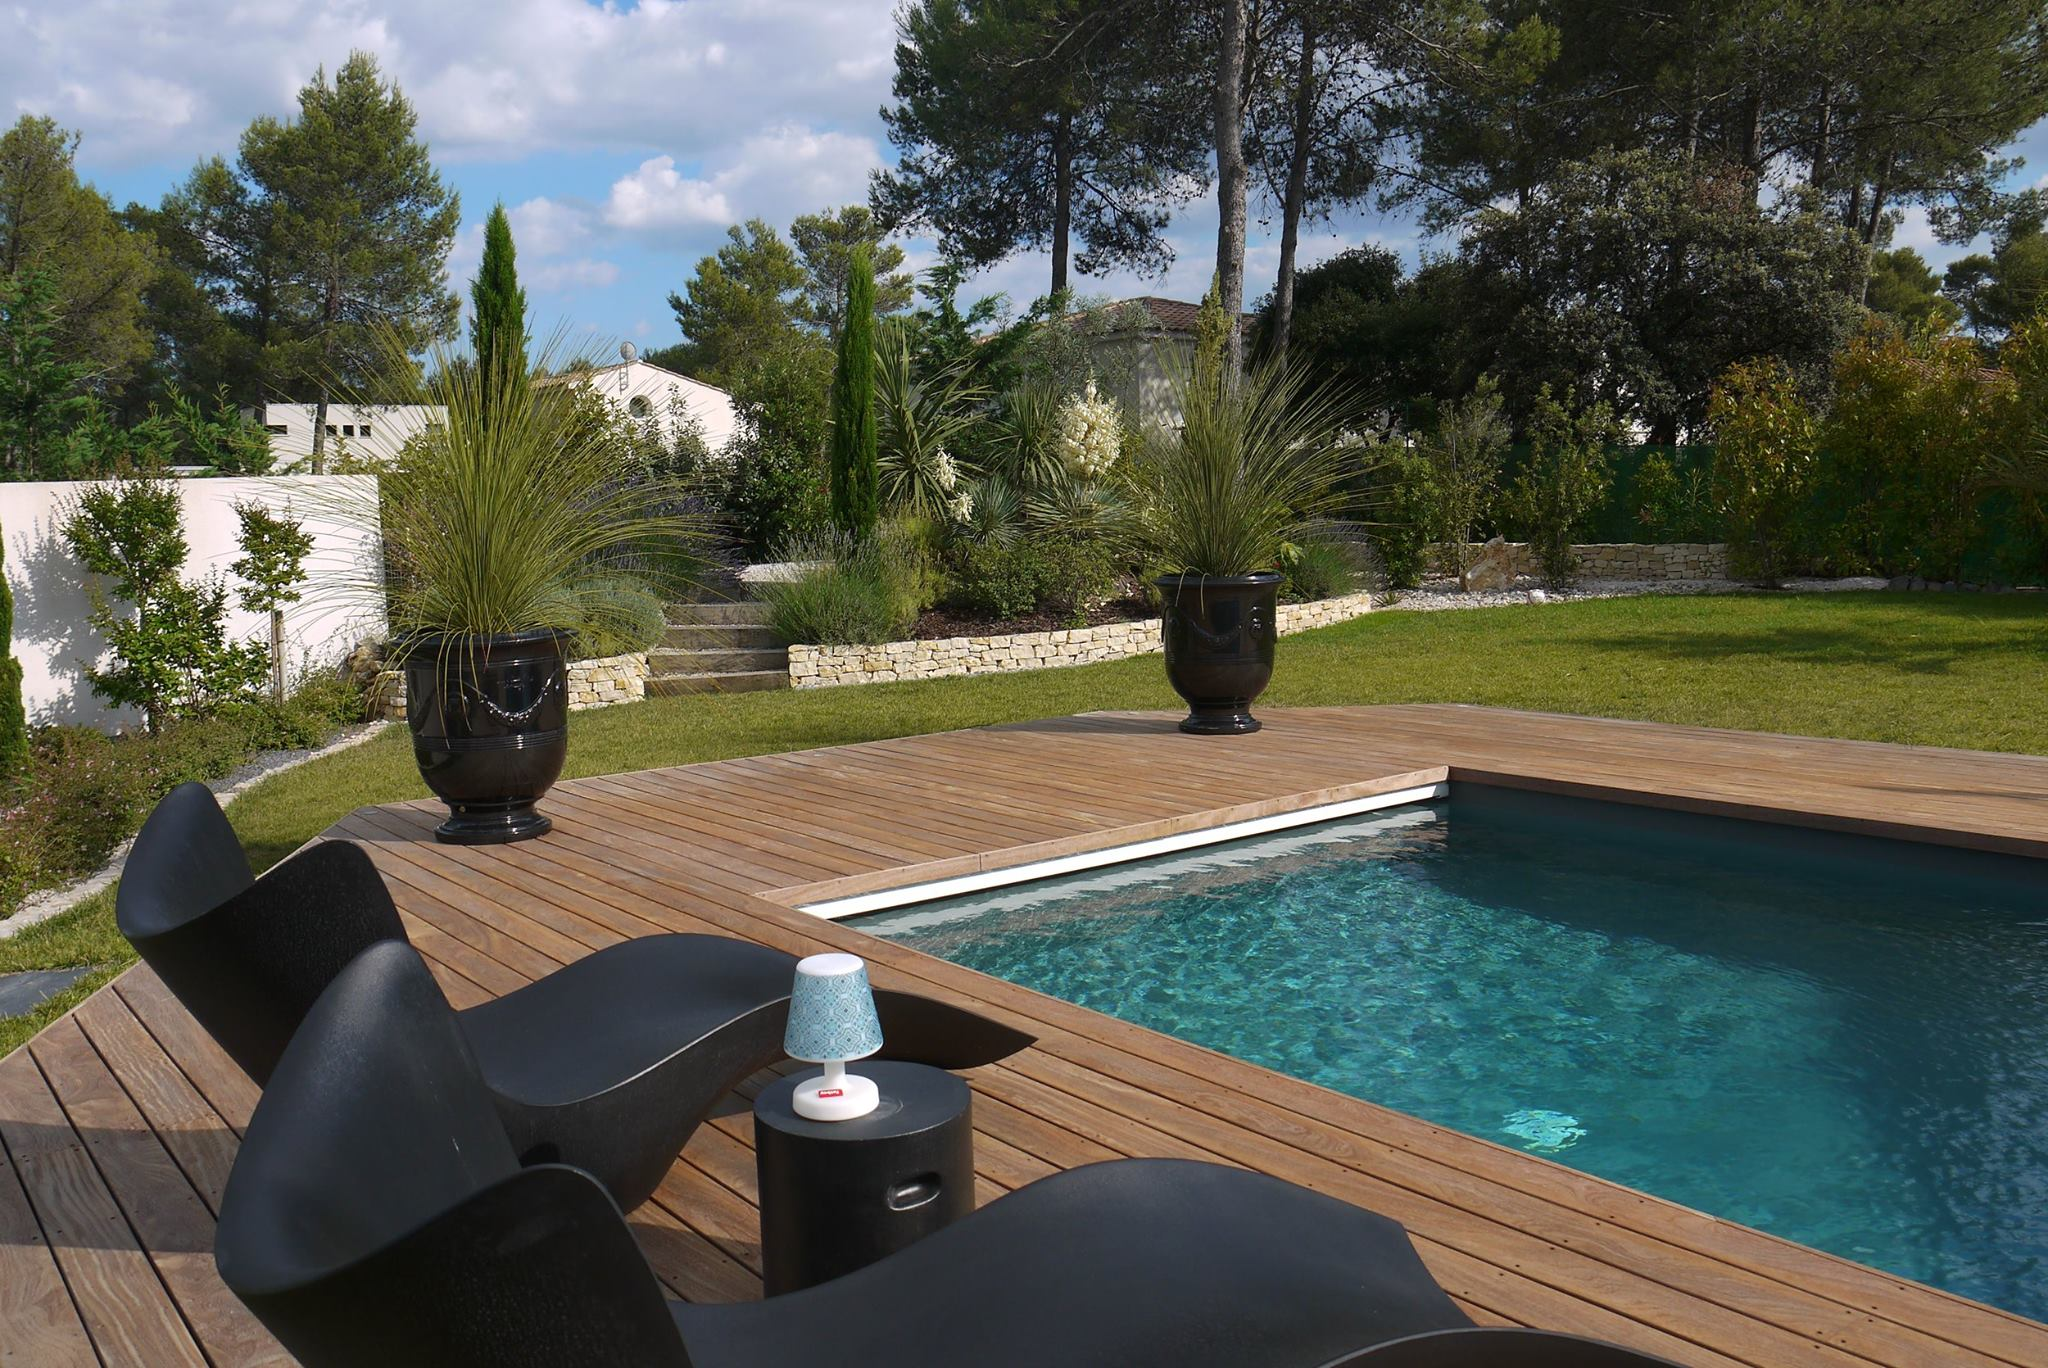 Paysagiste montpellier amenagement jardin decoration jardin for Amenagements jardins